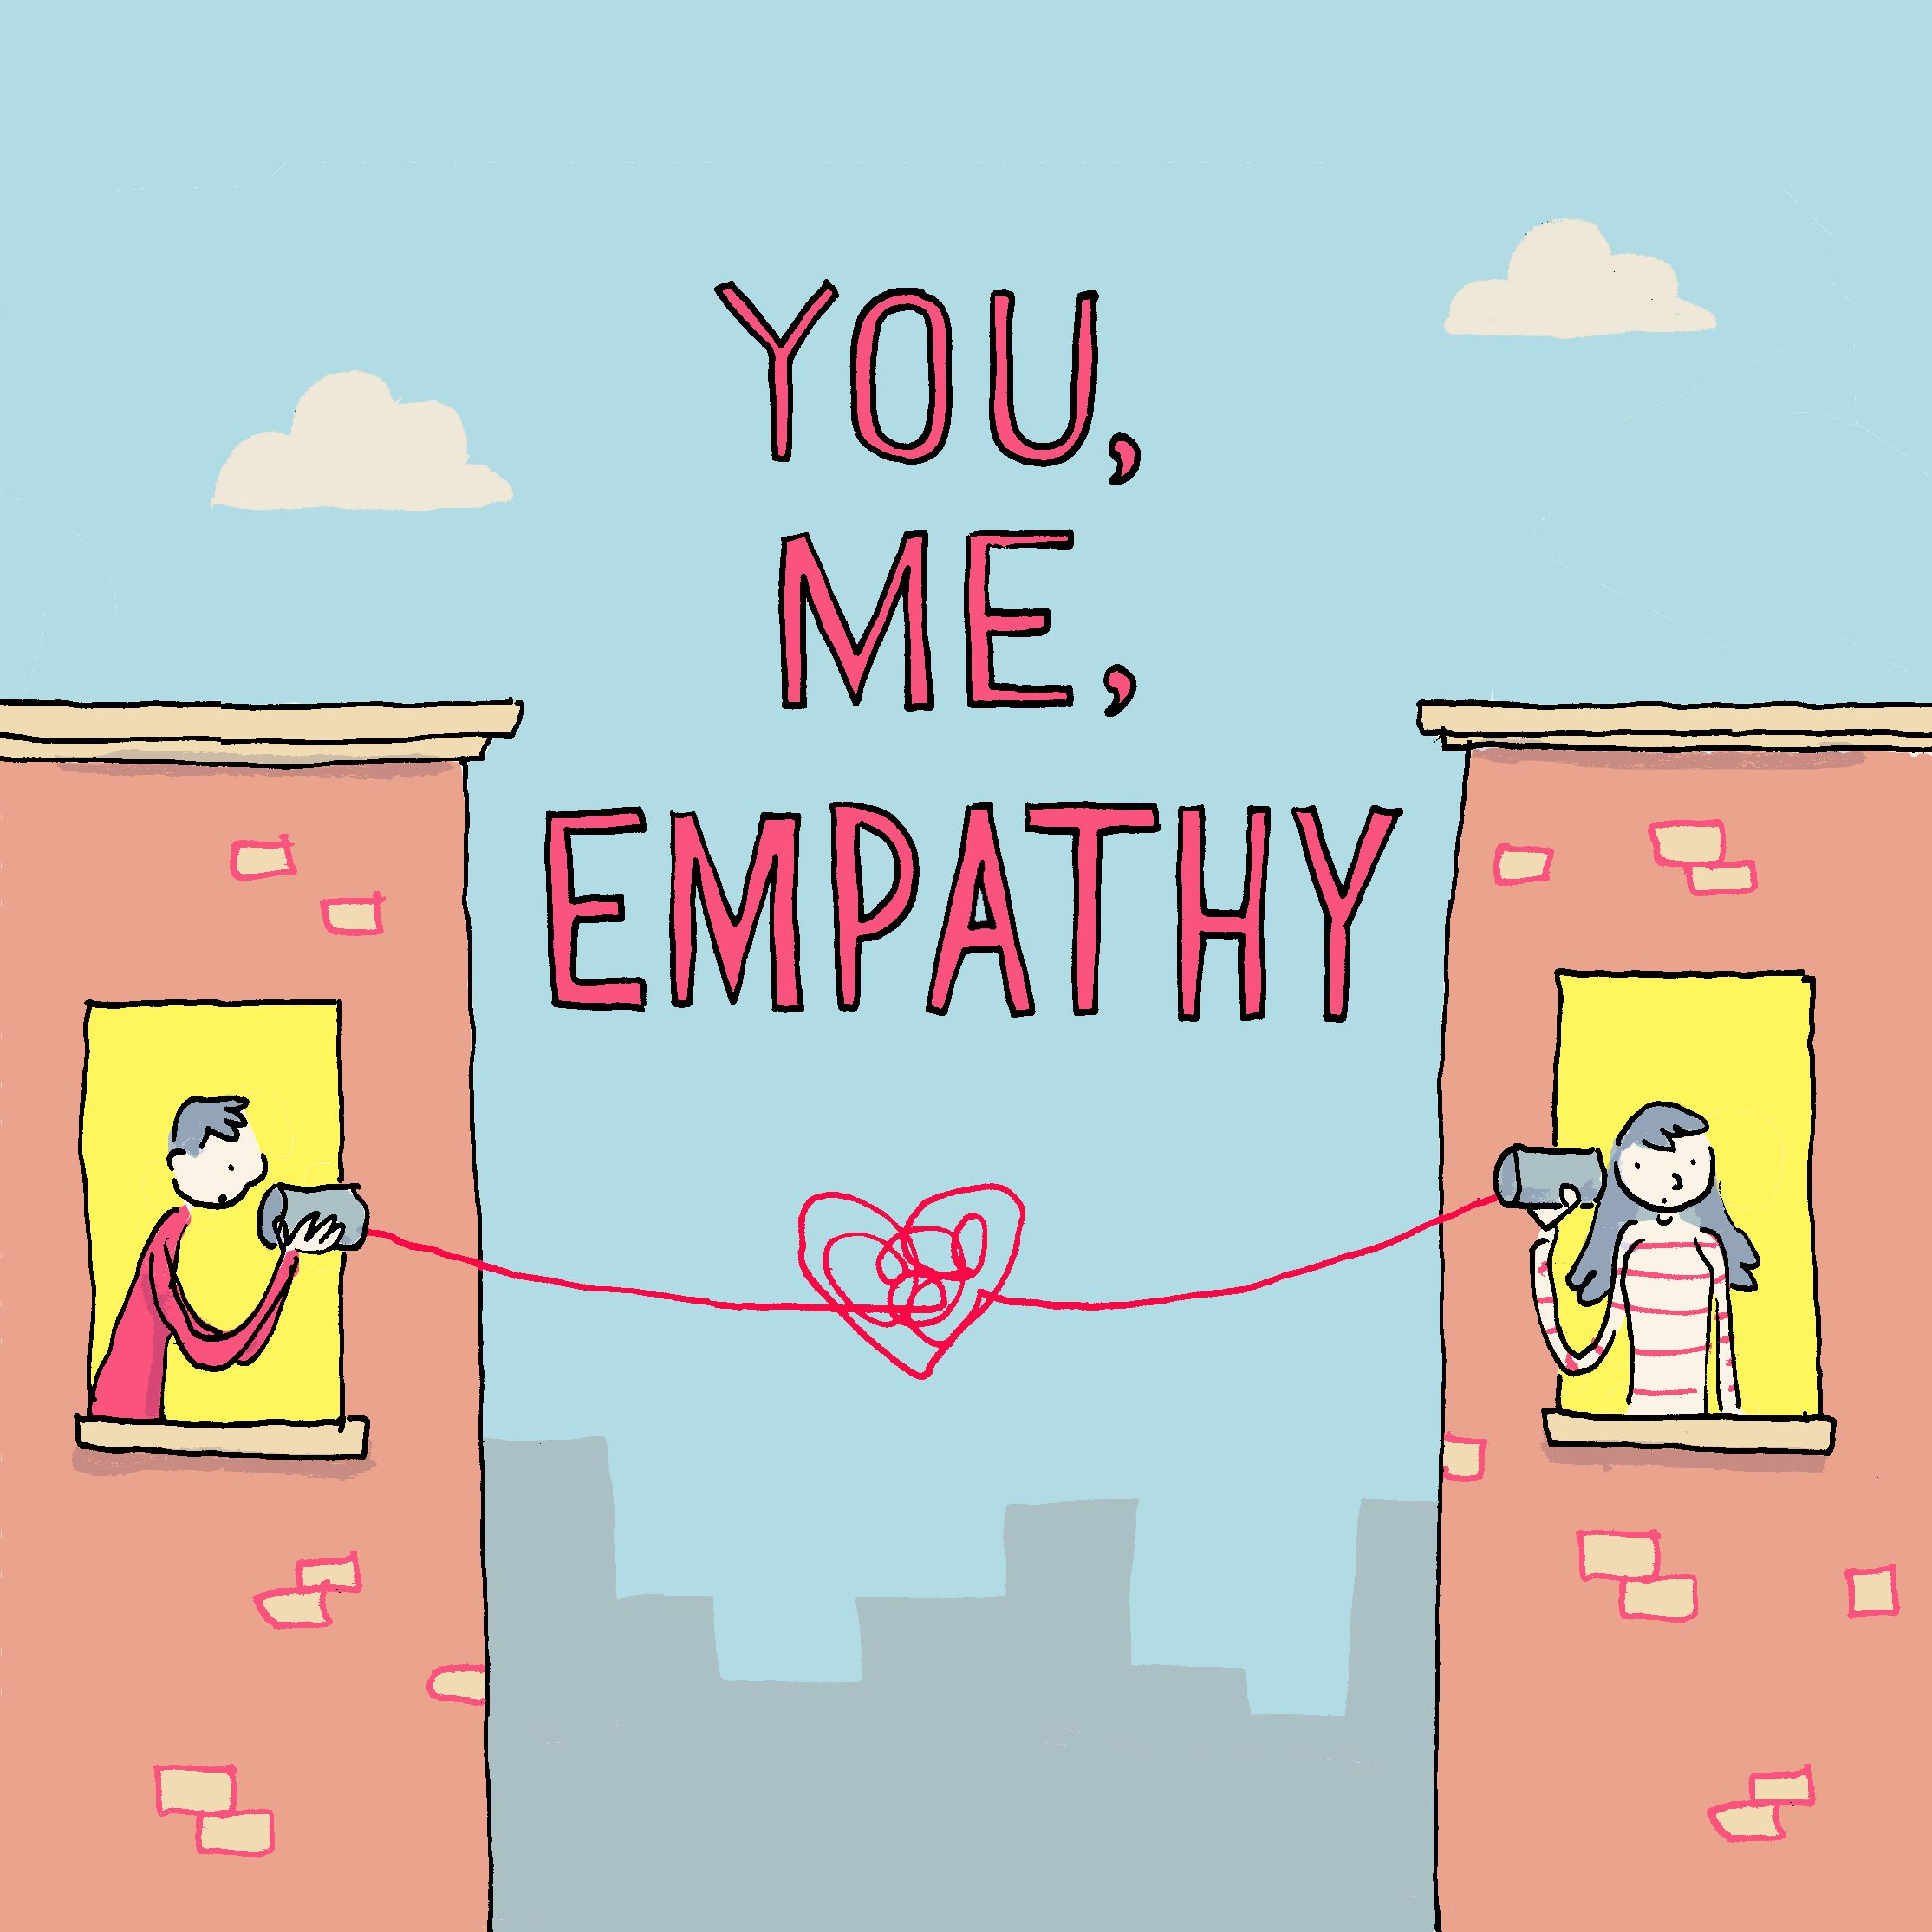 You, Me, Empathy Podcast - Non Wels, The Brave Files Podcasr